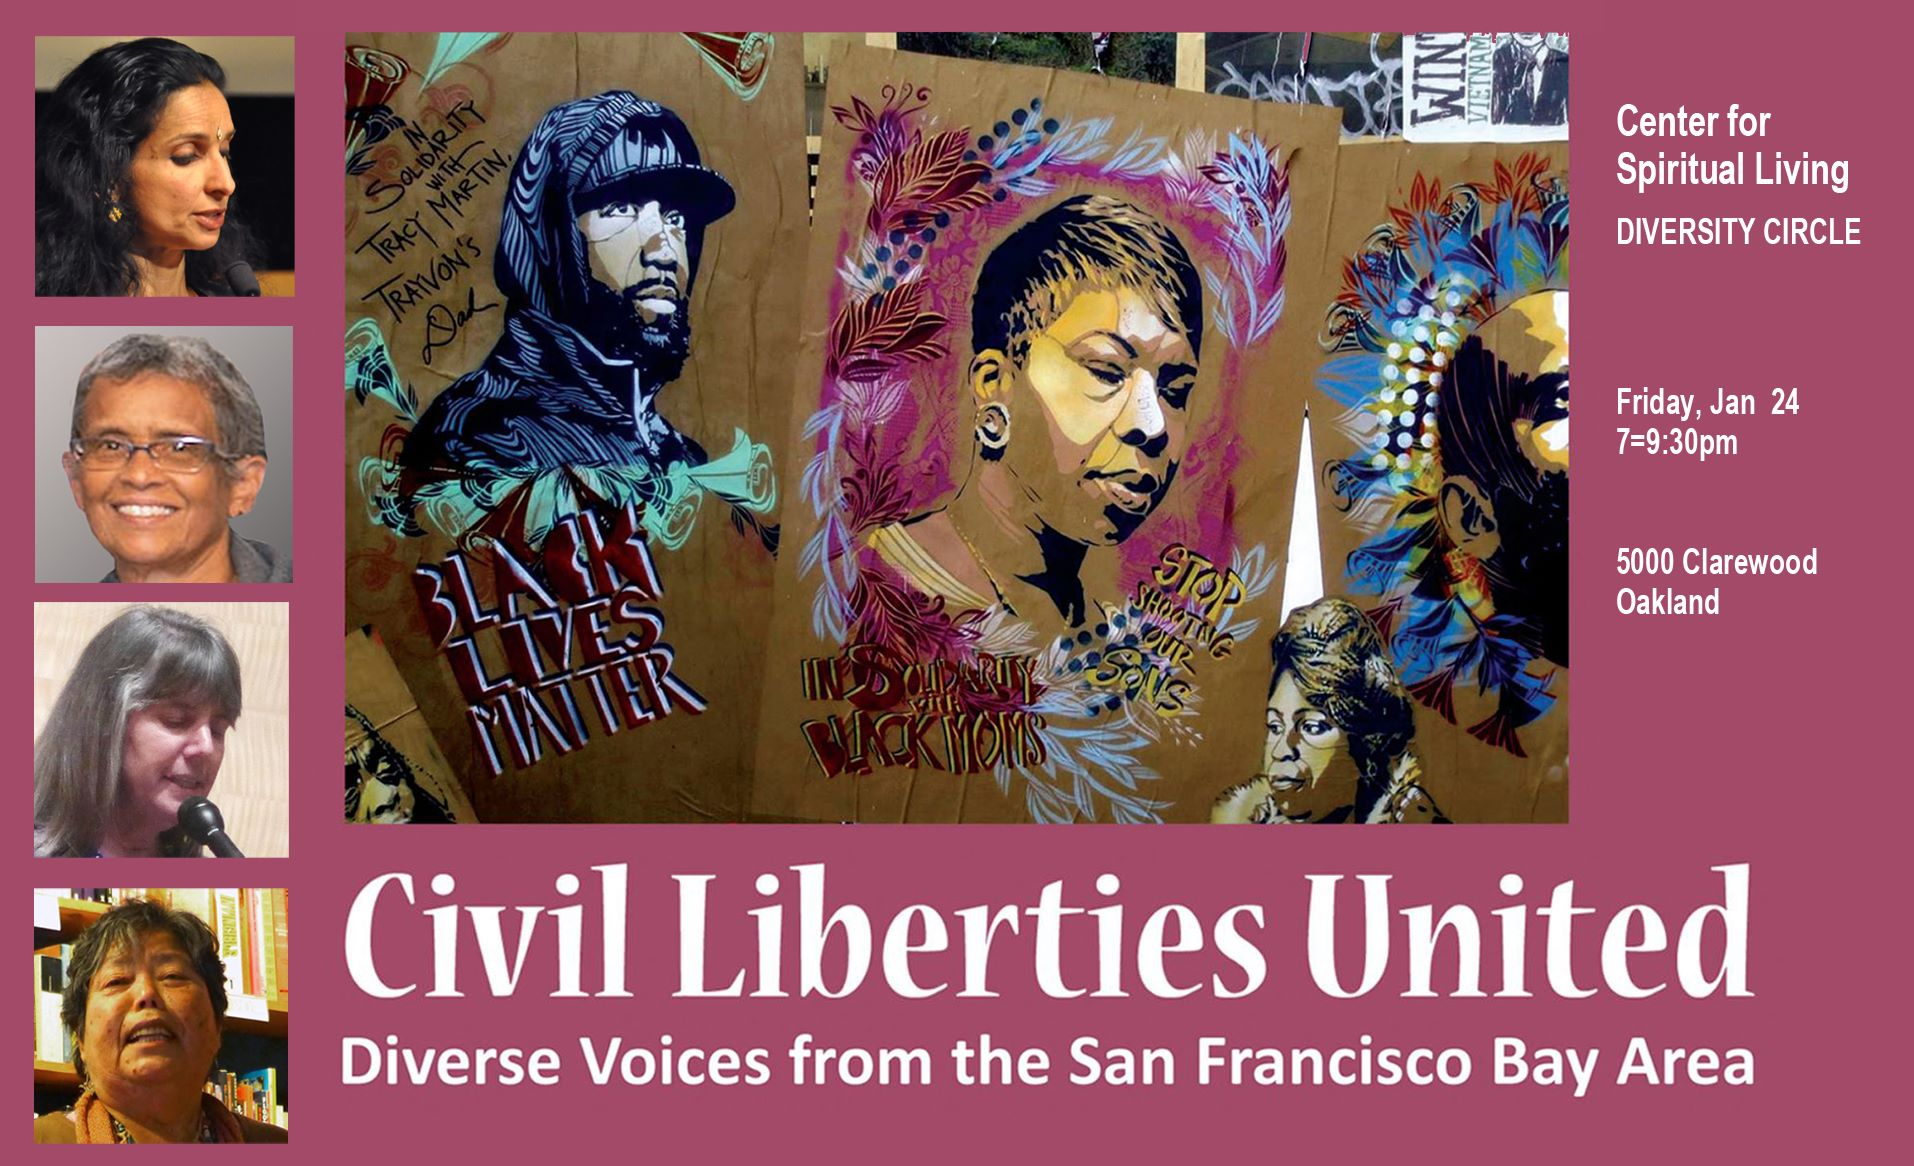 flier for Civil Liberties United